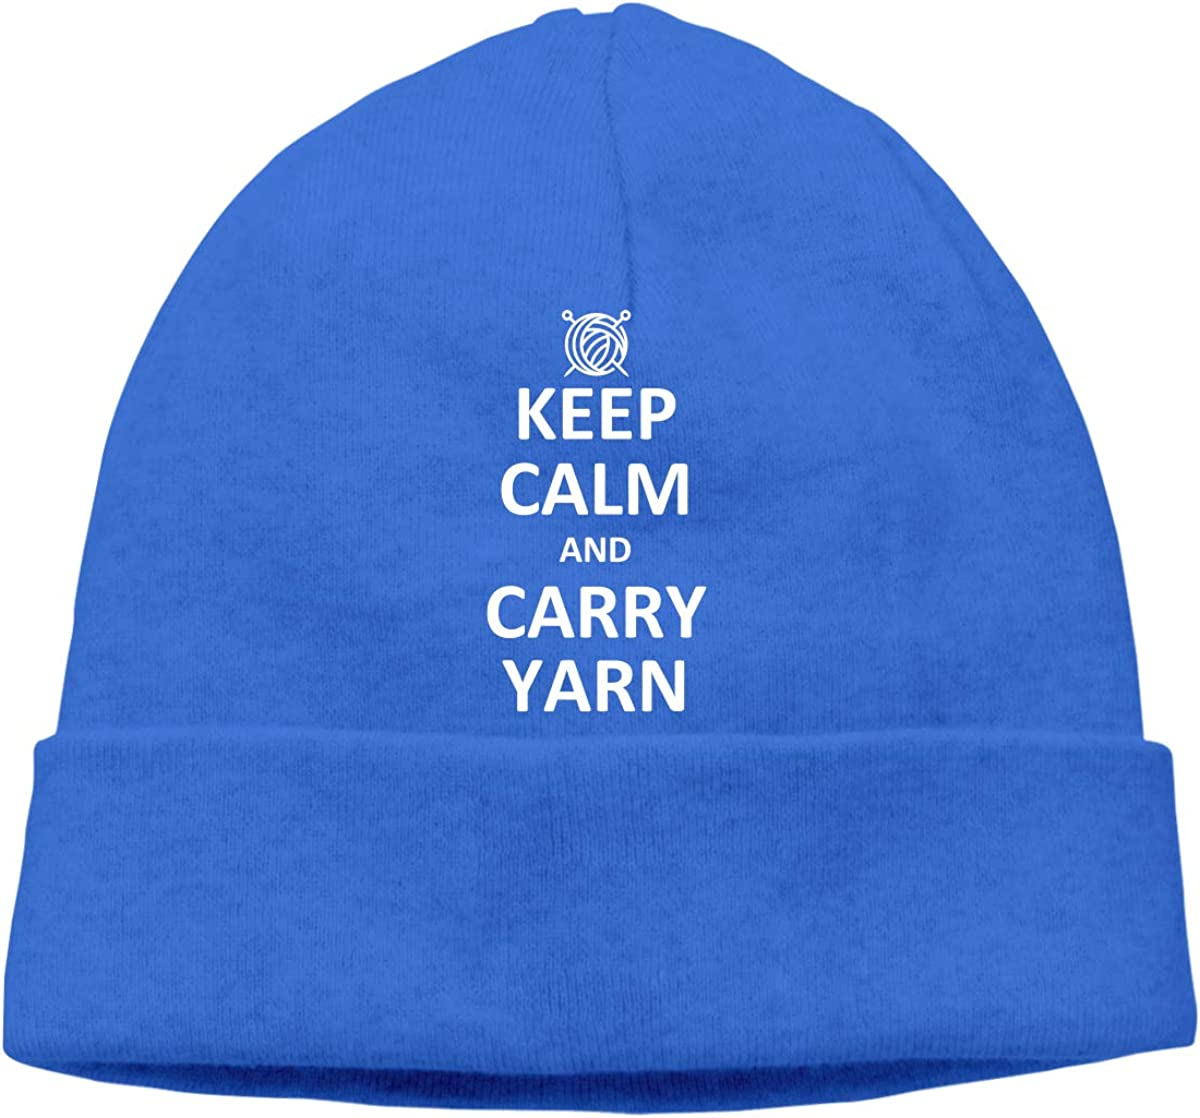 Beanie Hat Keep Calm and Carry Yarn Warm Skull Caps for Men and Women